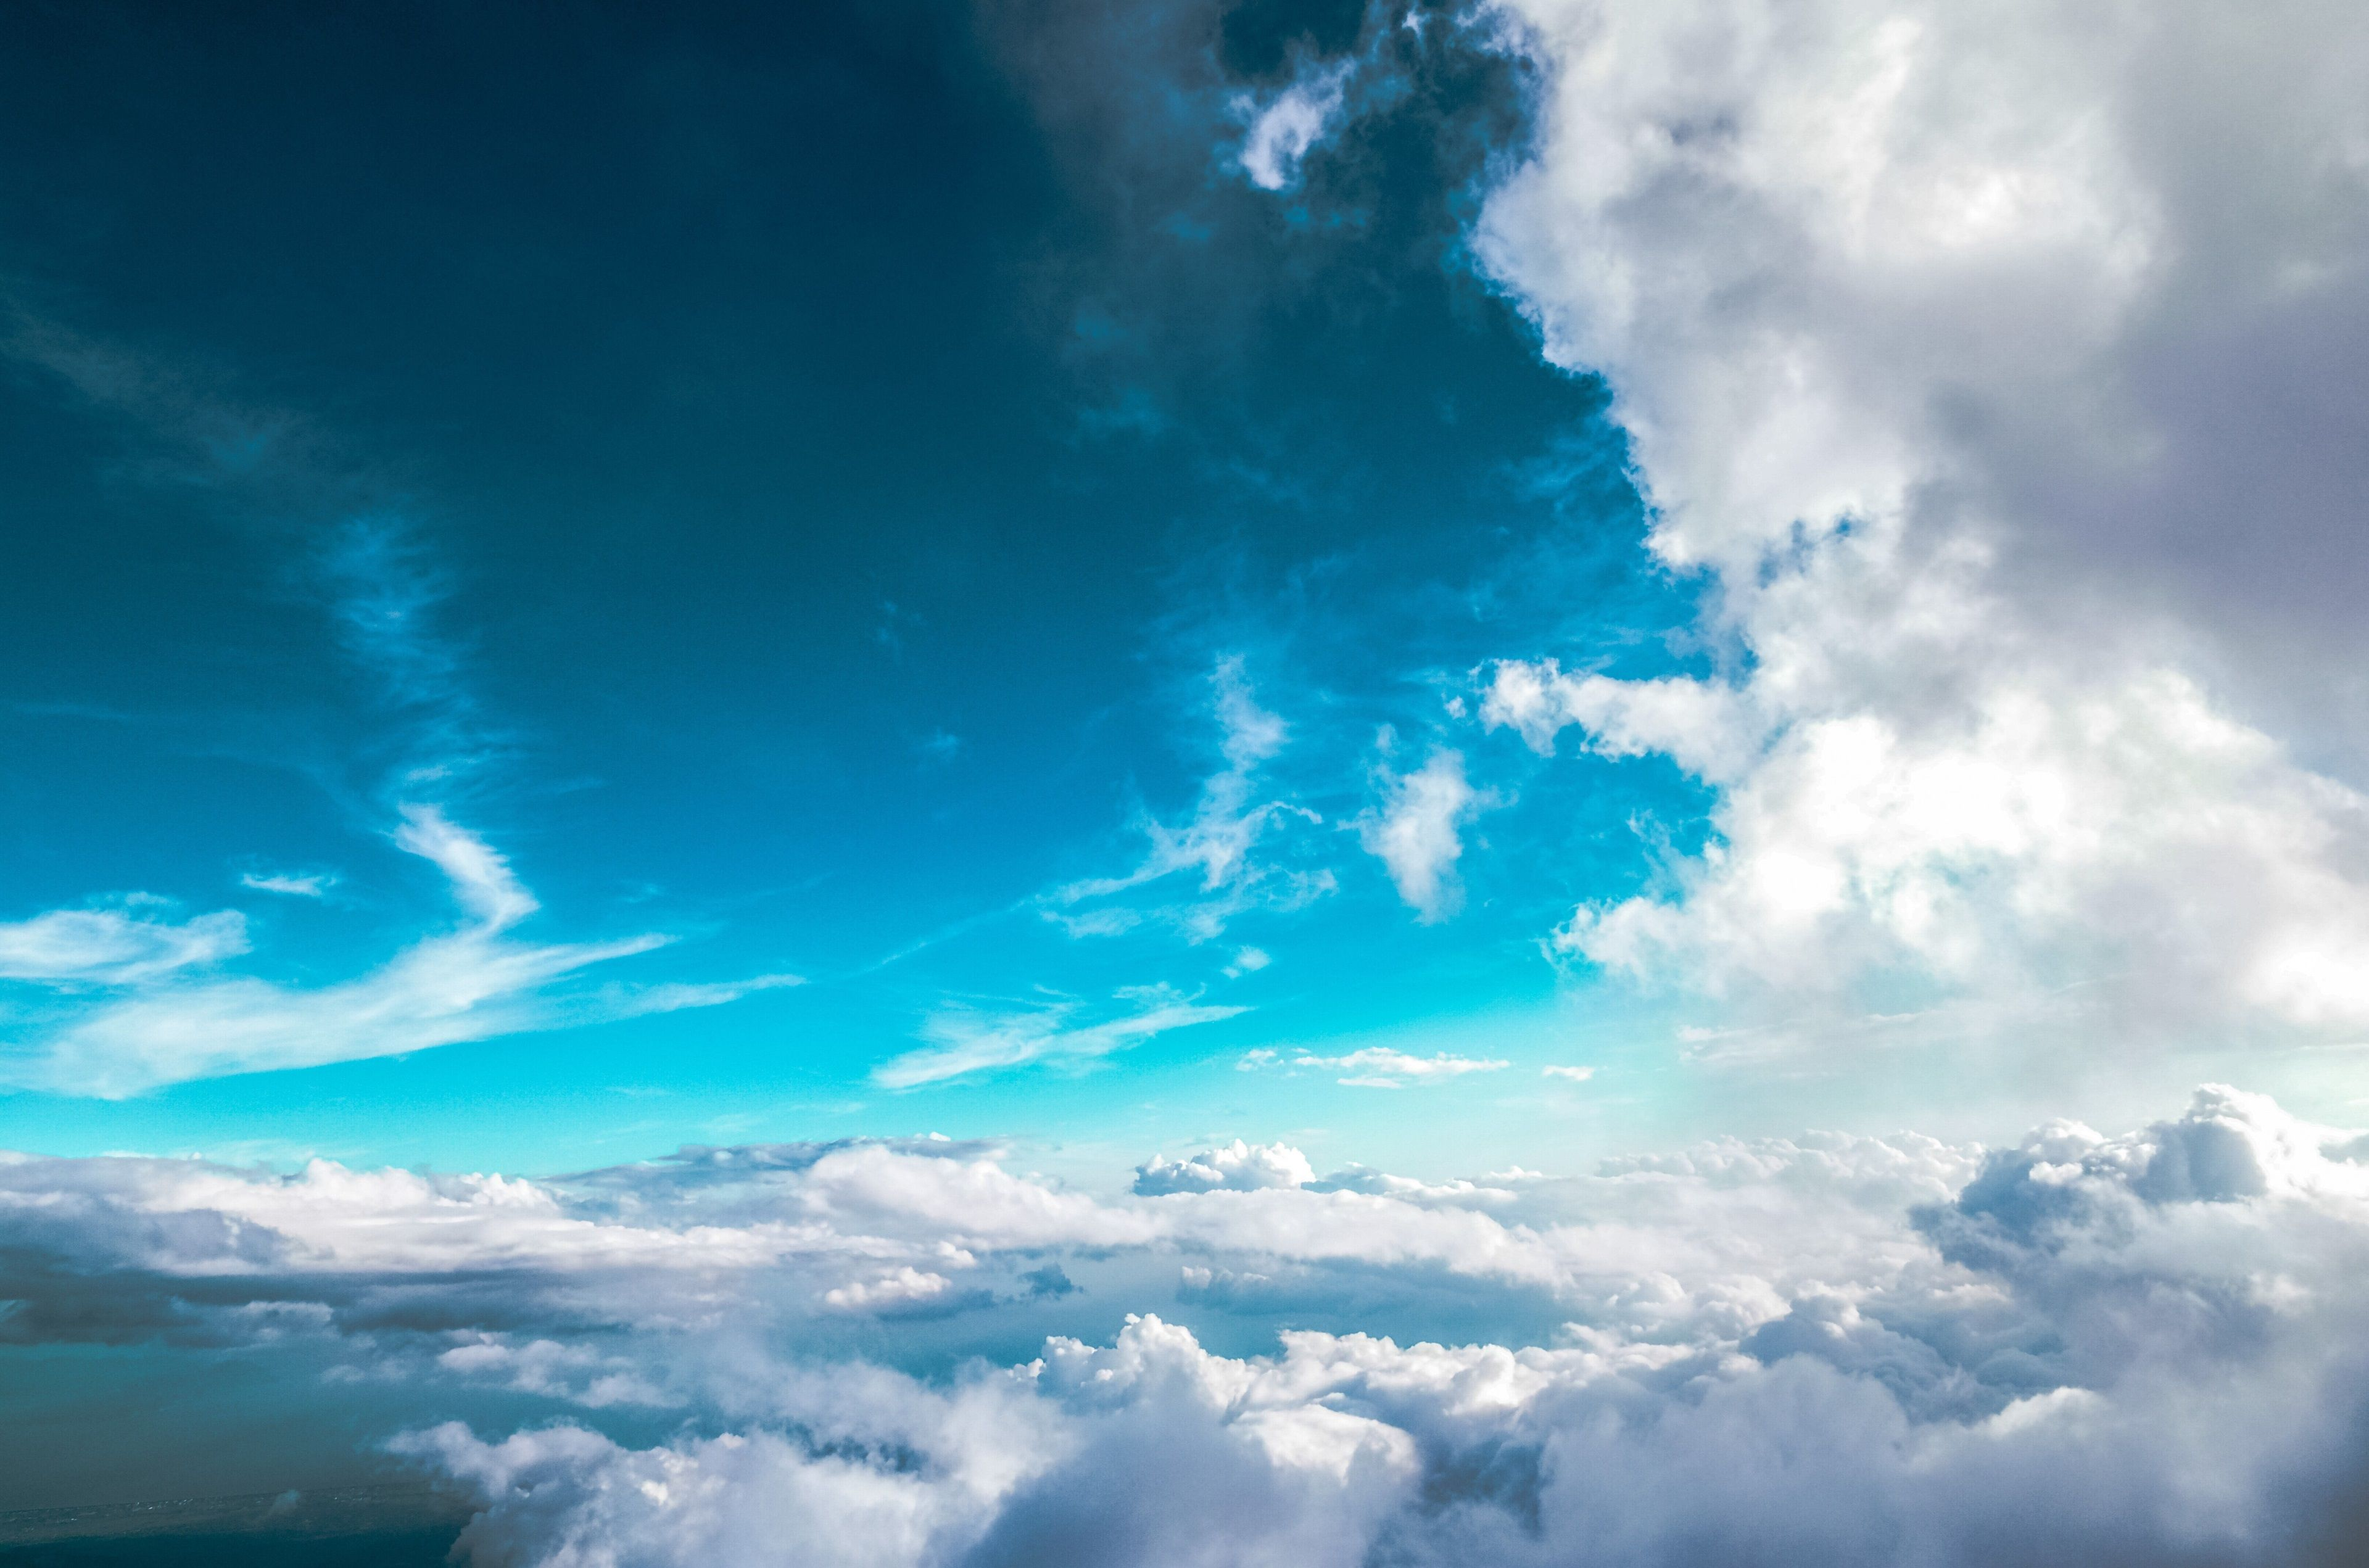 3840x2542 Clouds 4k Best Desktop Wallpaper Free Download Clouds Wallpaper Iphone Blue Sky Wallpaper Blue Sky Clouds